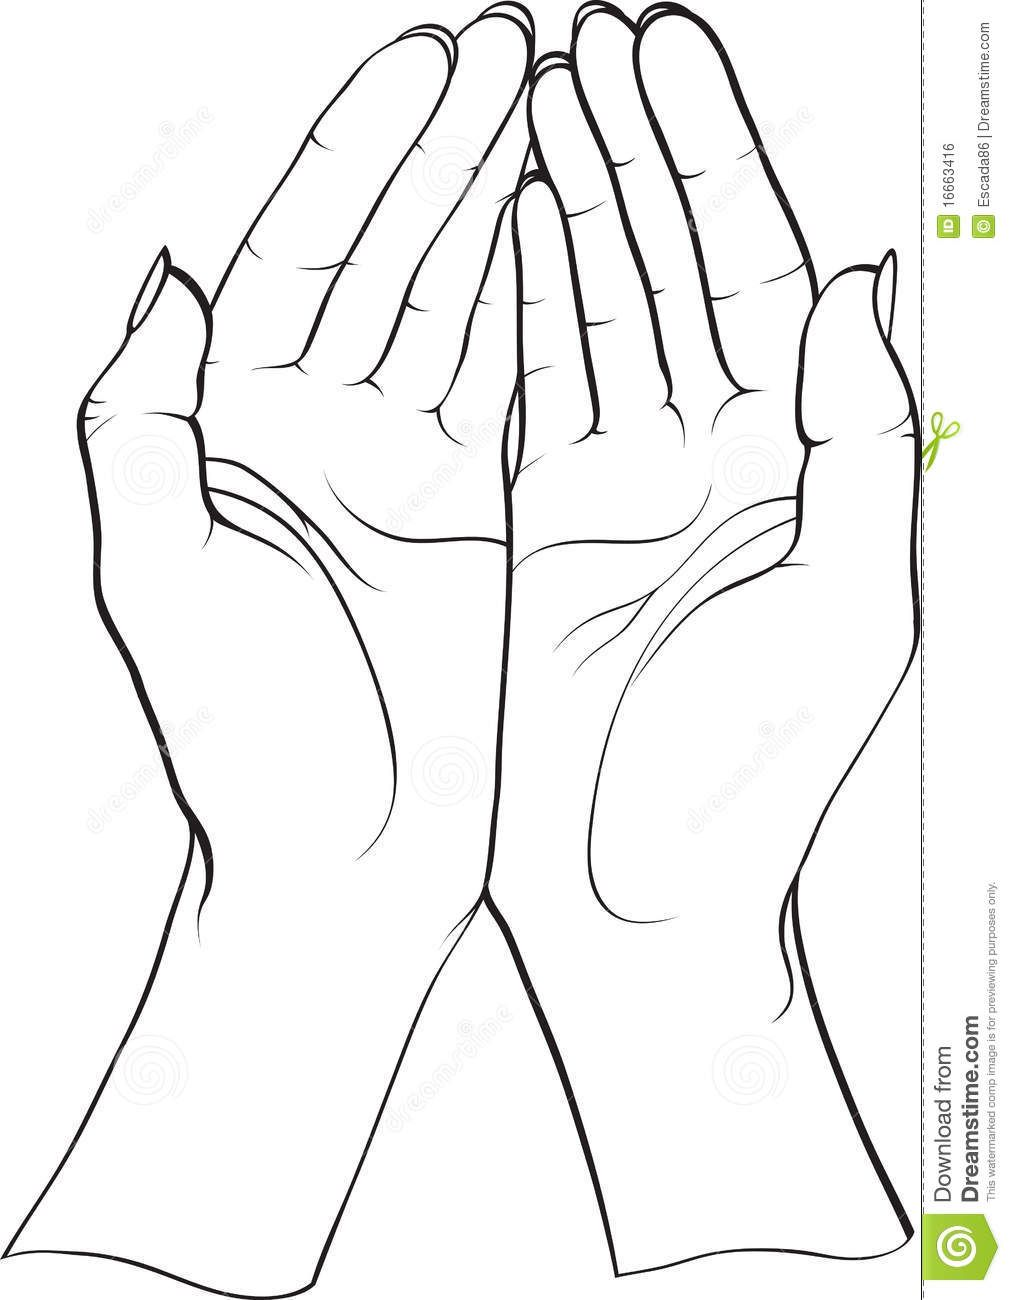 How To Draw Open Cupped Hands Yahoo Image Search Results How